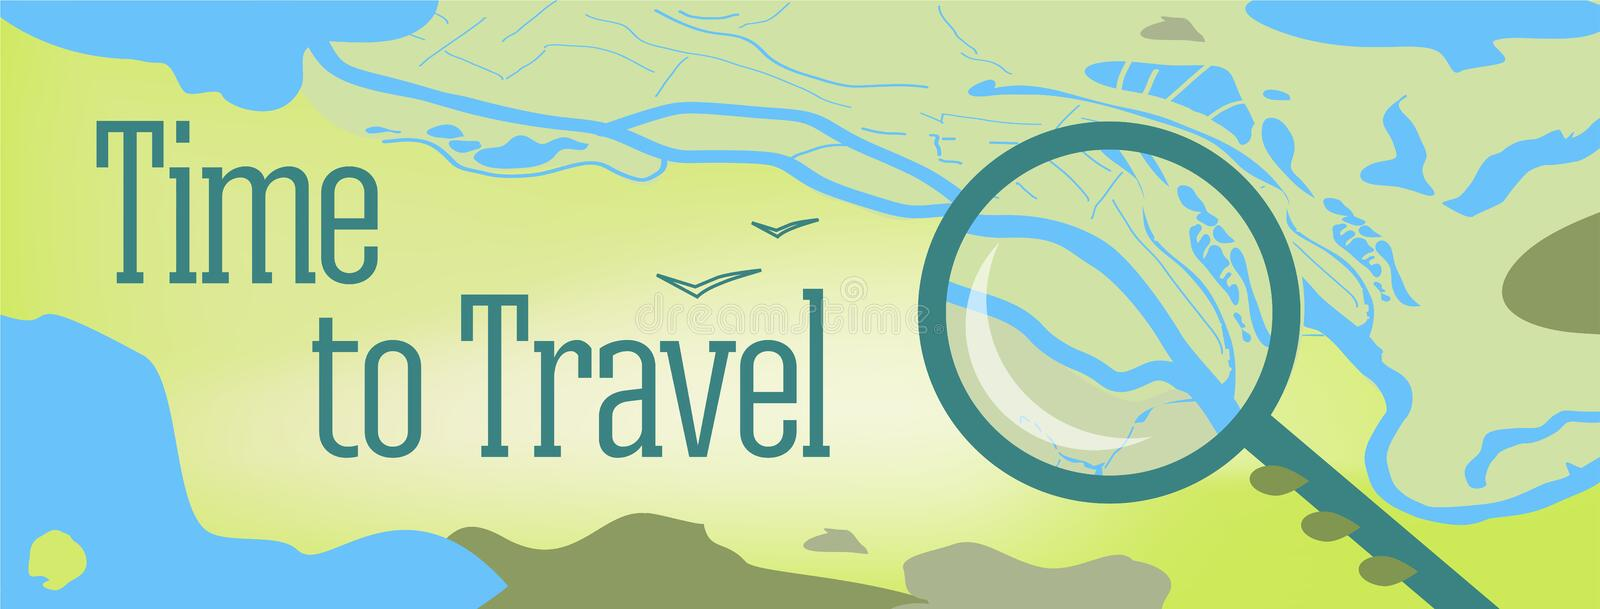 Vector banner design with text Time to Travel. Illustration of a map of the world, with the sea, lakes, mountains vector illustration